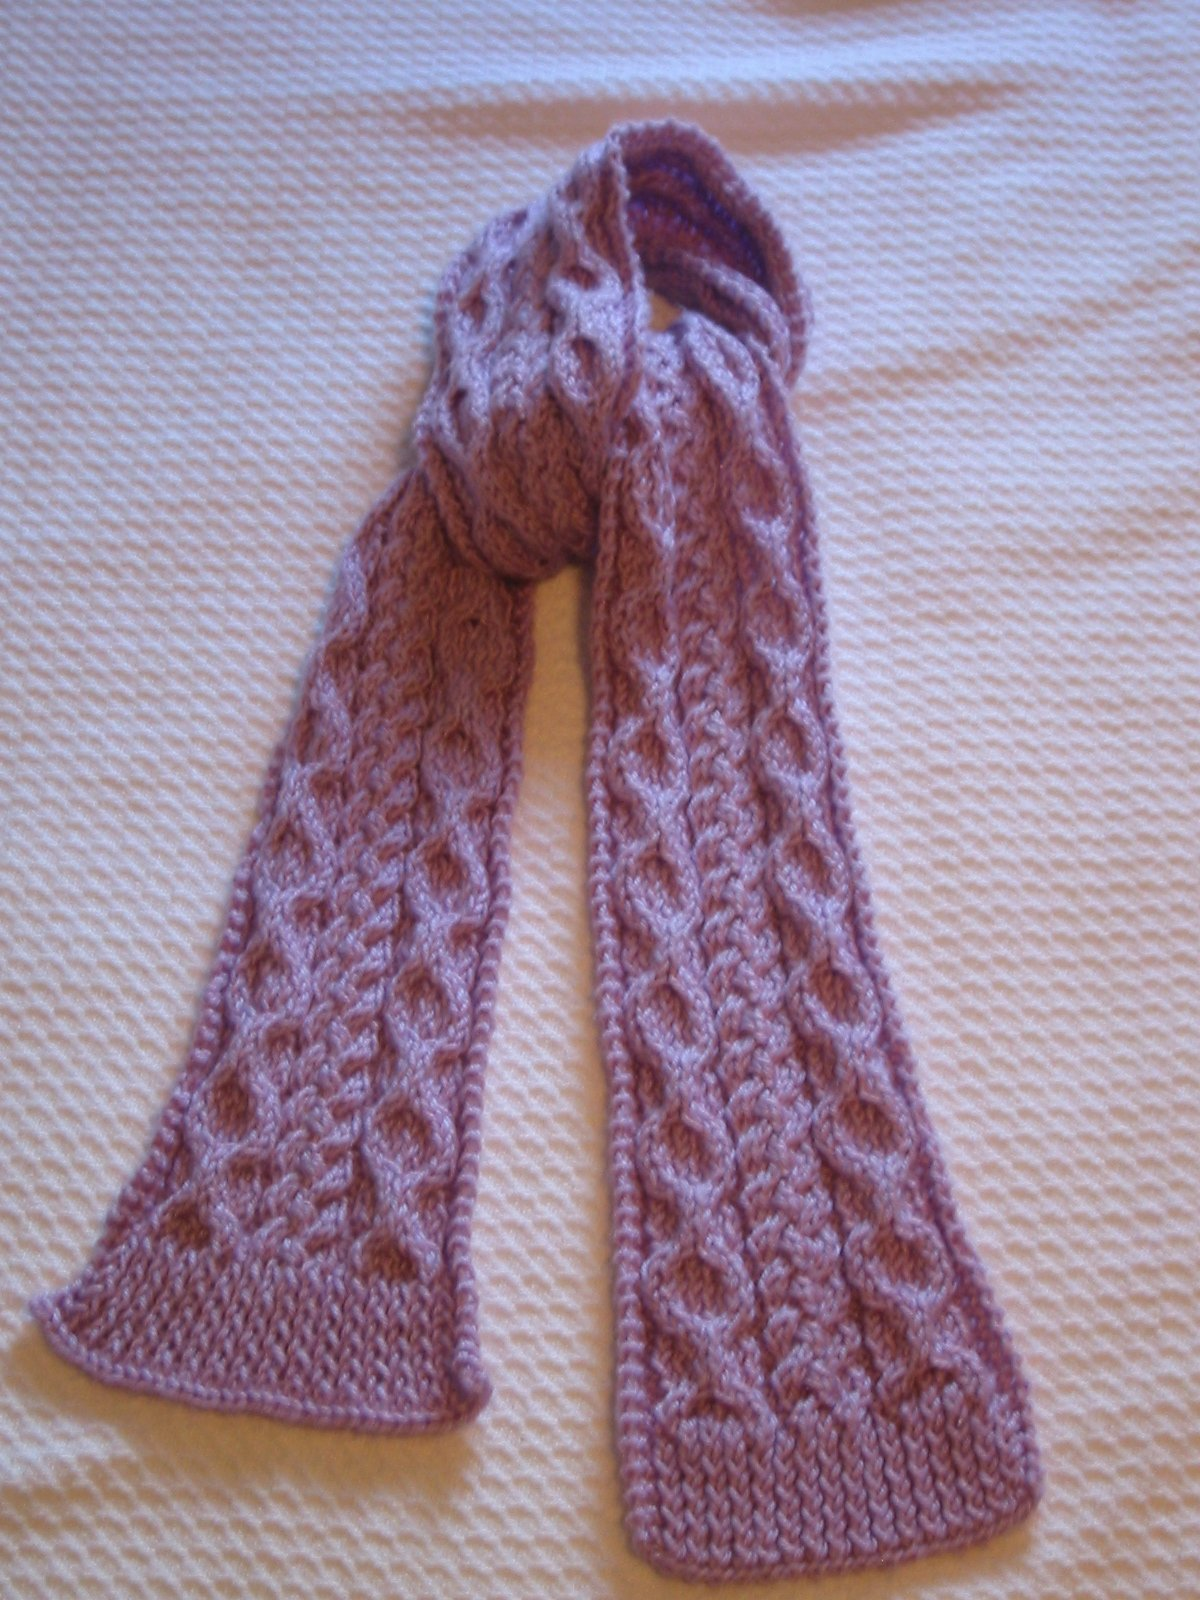 Scarf Knitting Pattern : Cable Knit Scarf Pattern A Knitting Blog